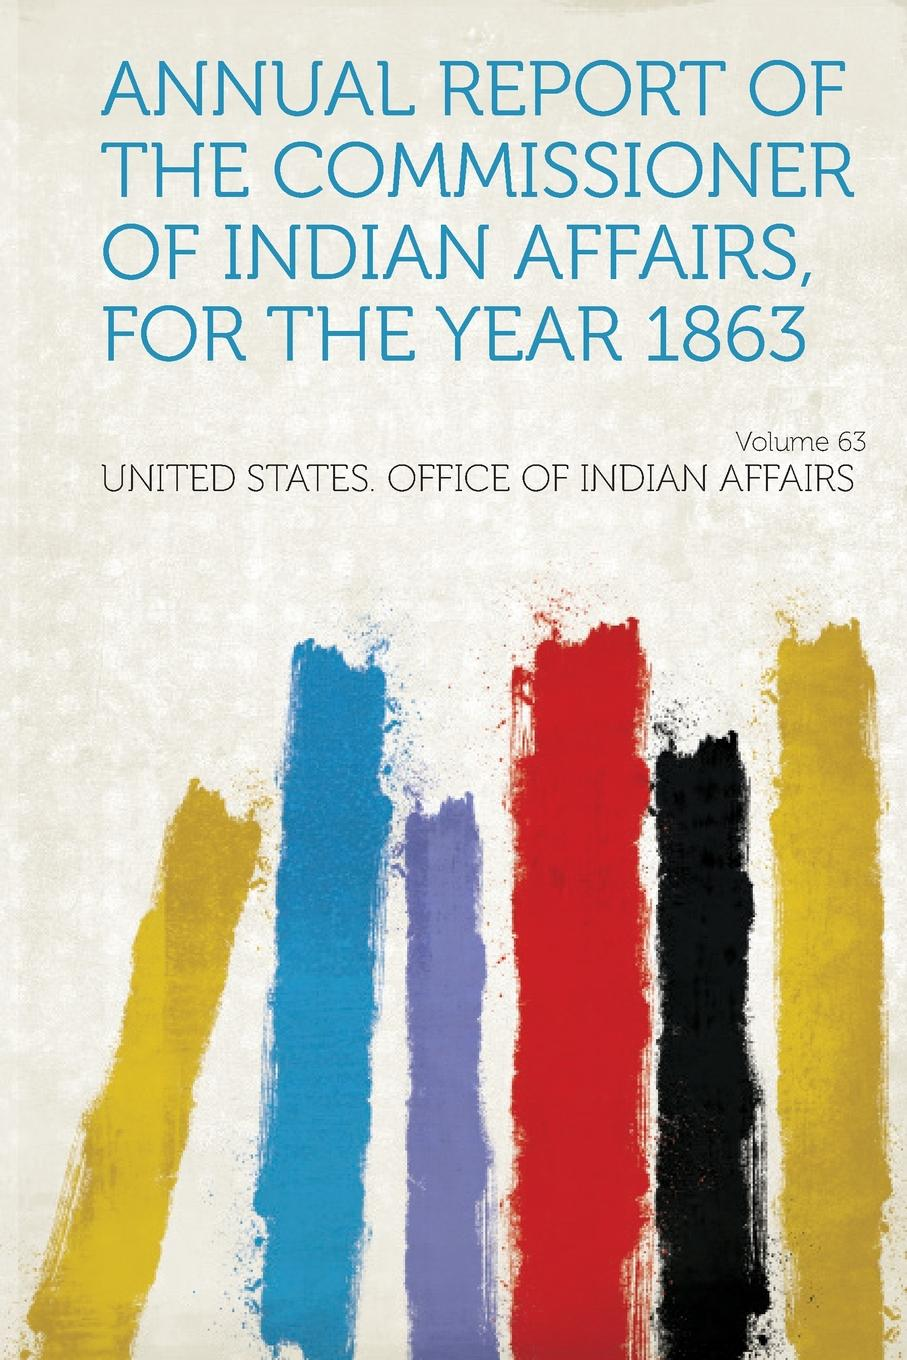 United States. Office of Indian Affairs Annual Report of the Commissioner of Indian Affairs, for the Year 1863 Volume 63